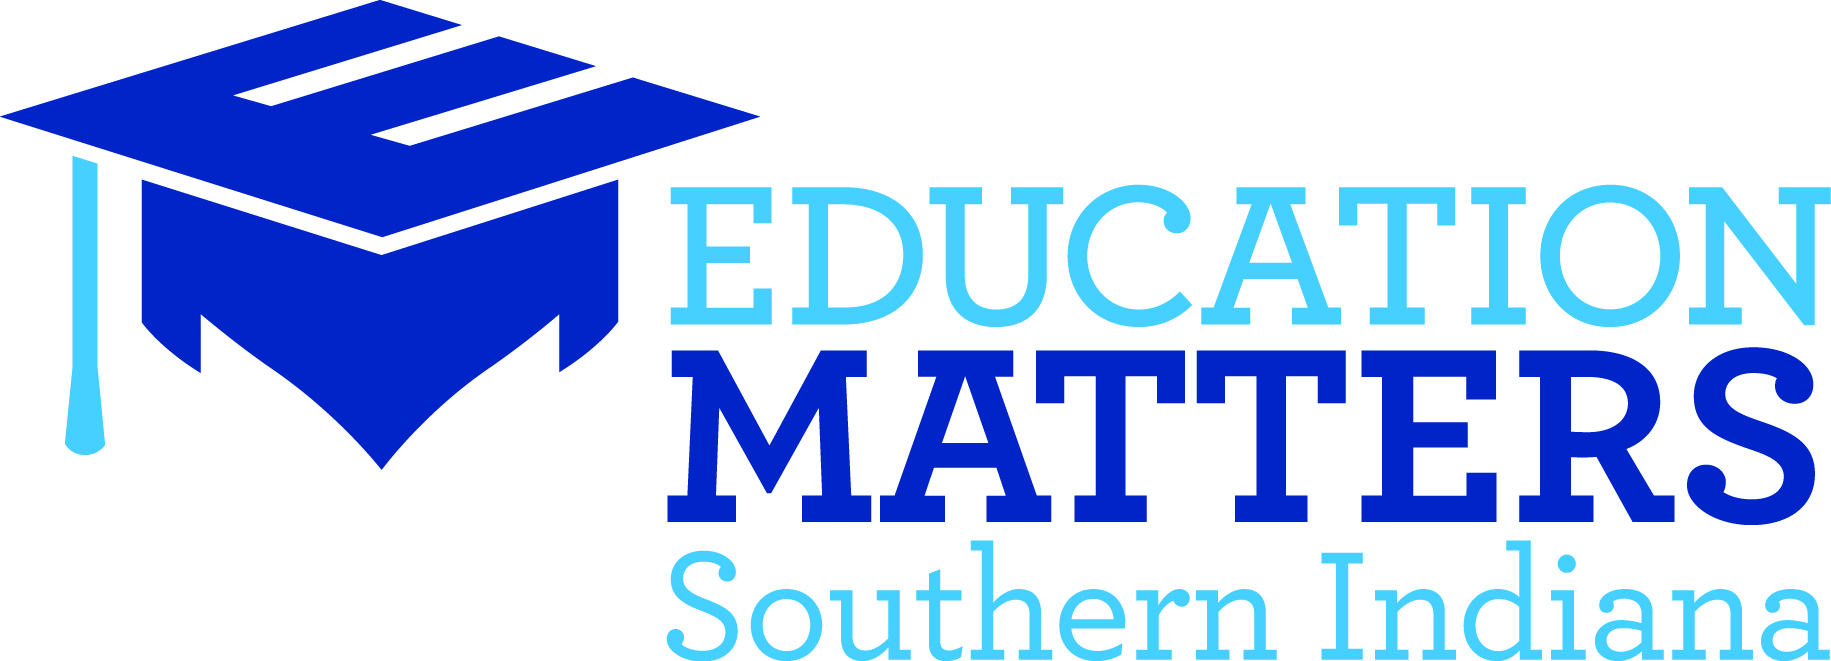 Education Matters Southern Indiana